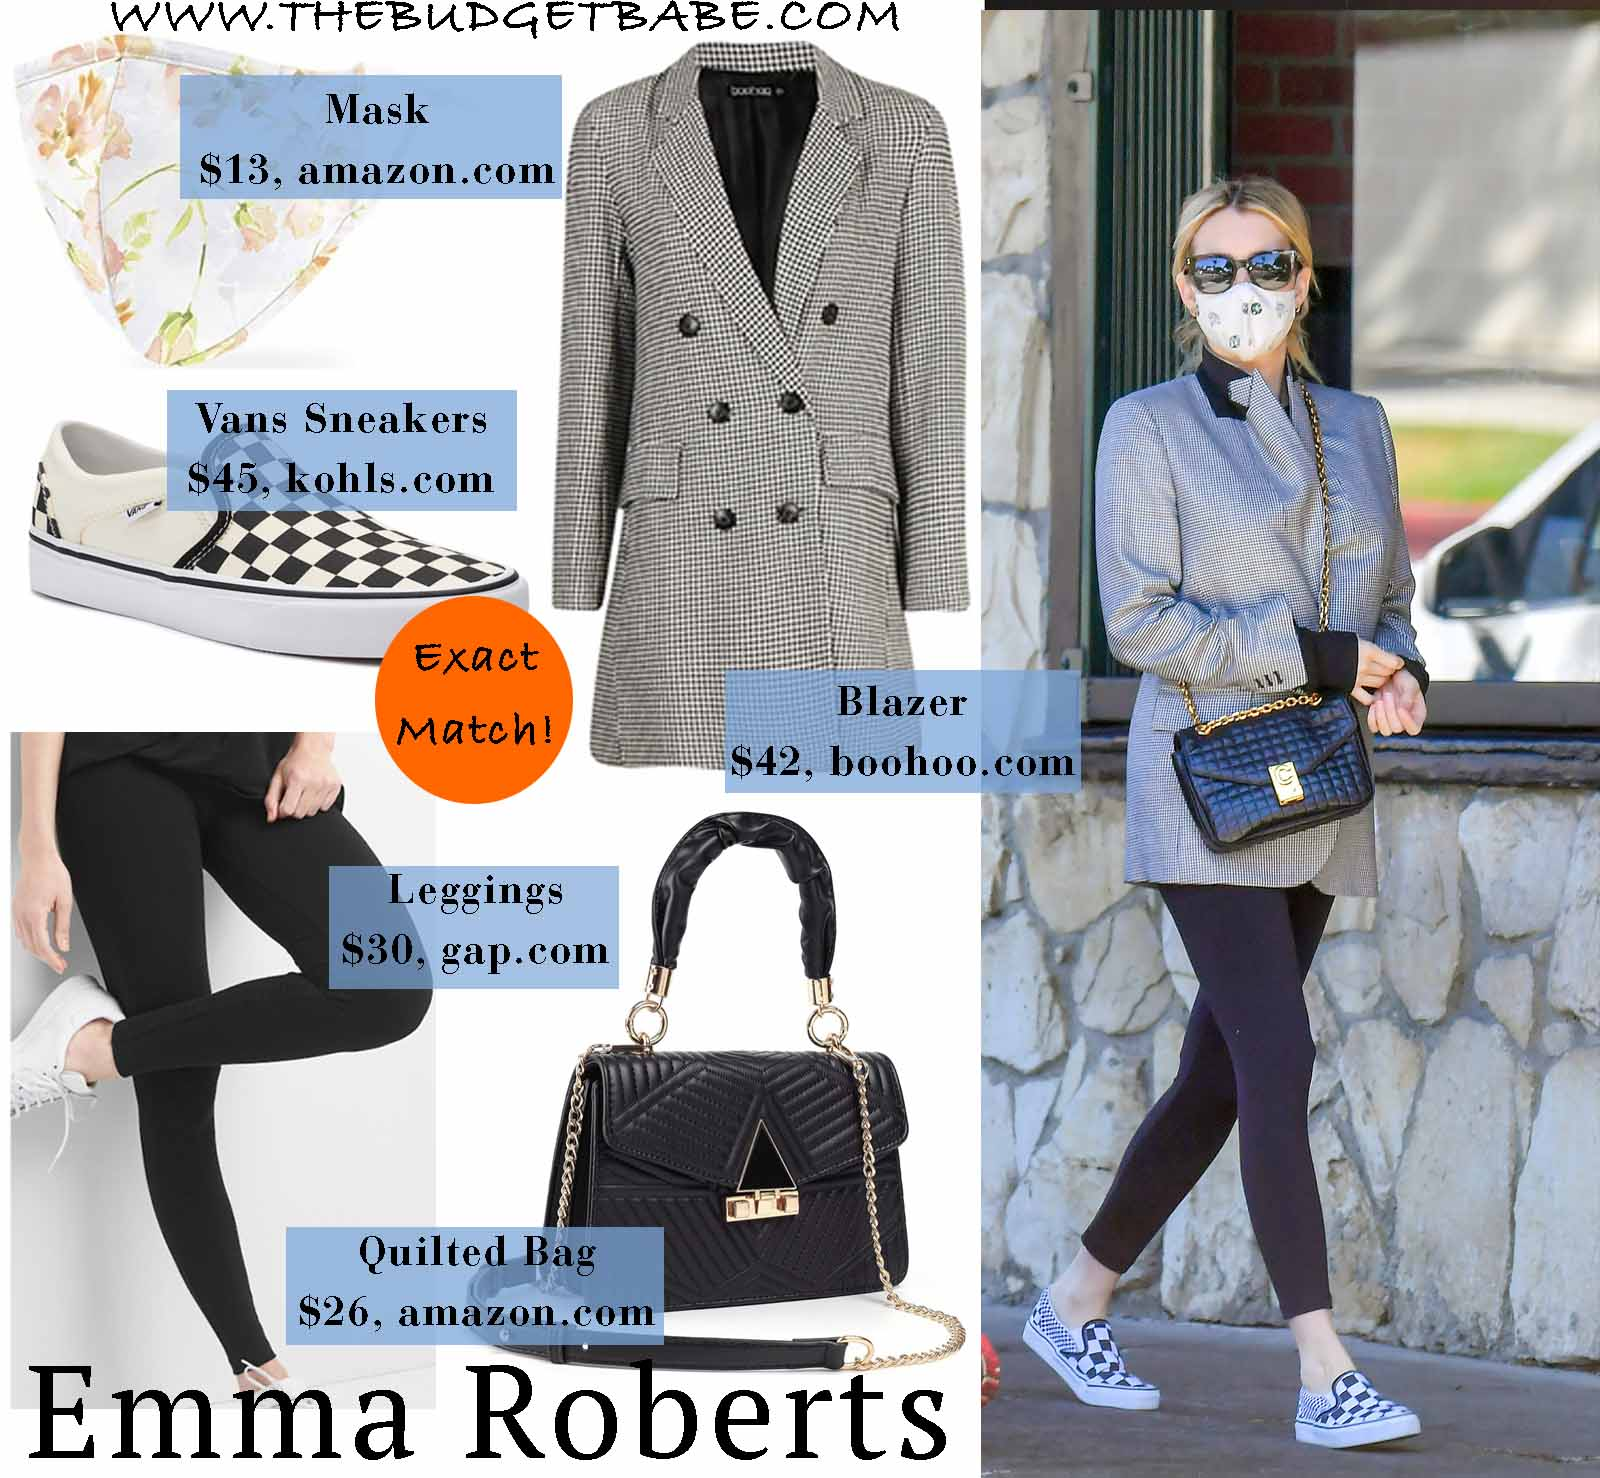 Emma Roberts mixes upscale and affordable pieces.